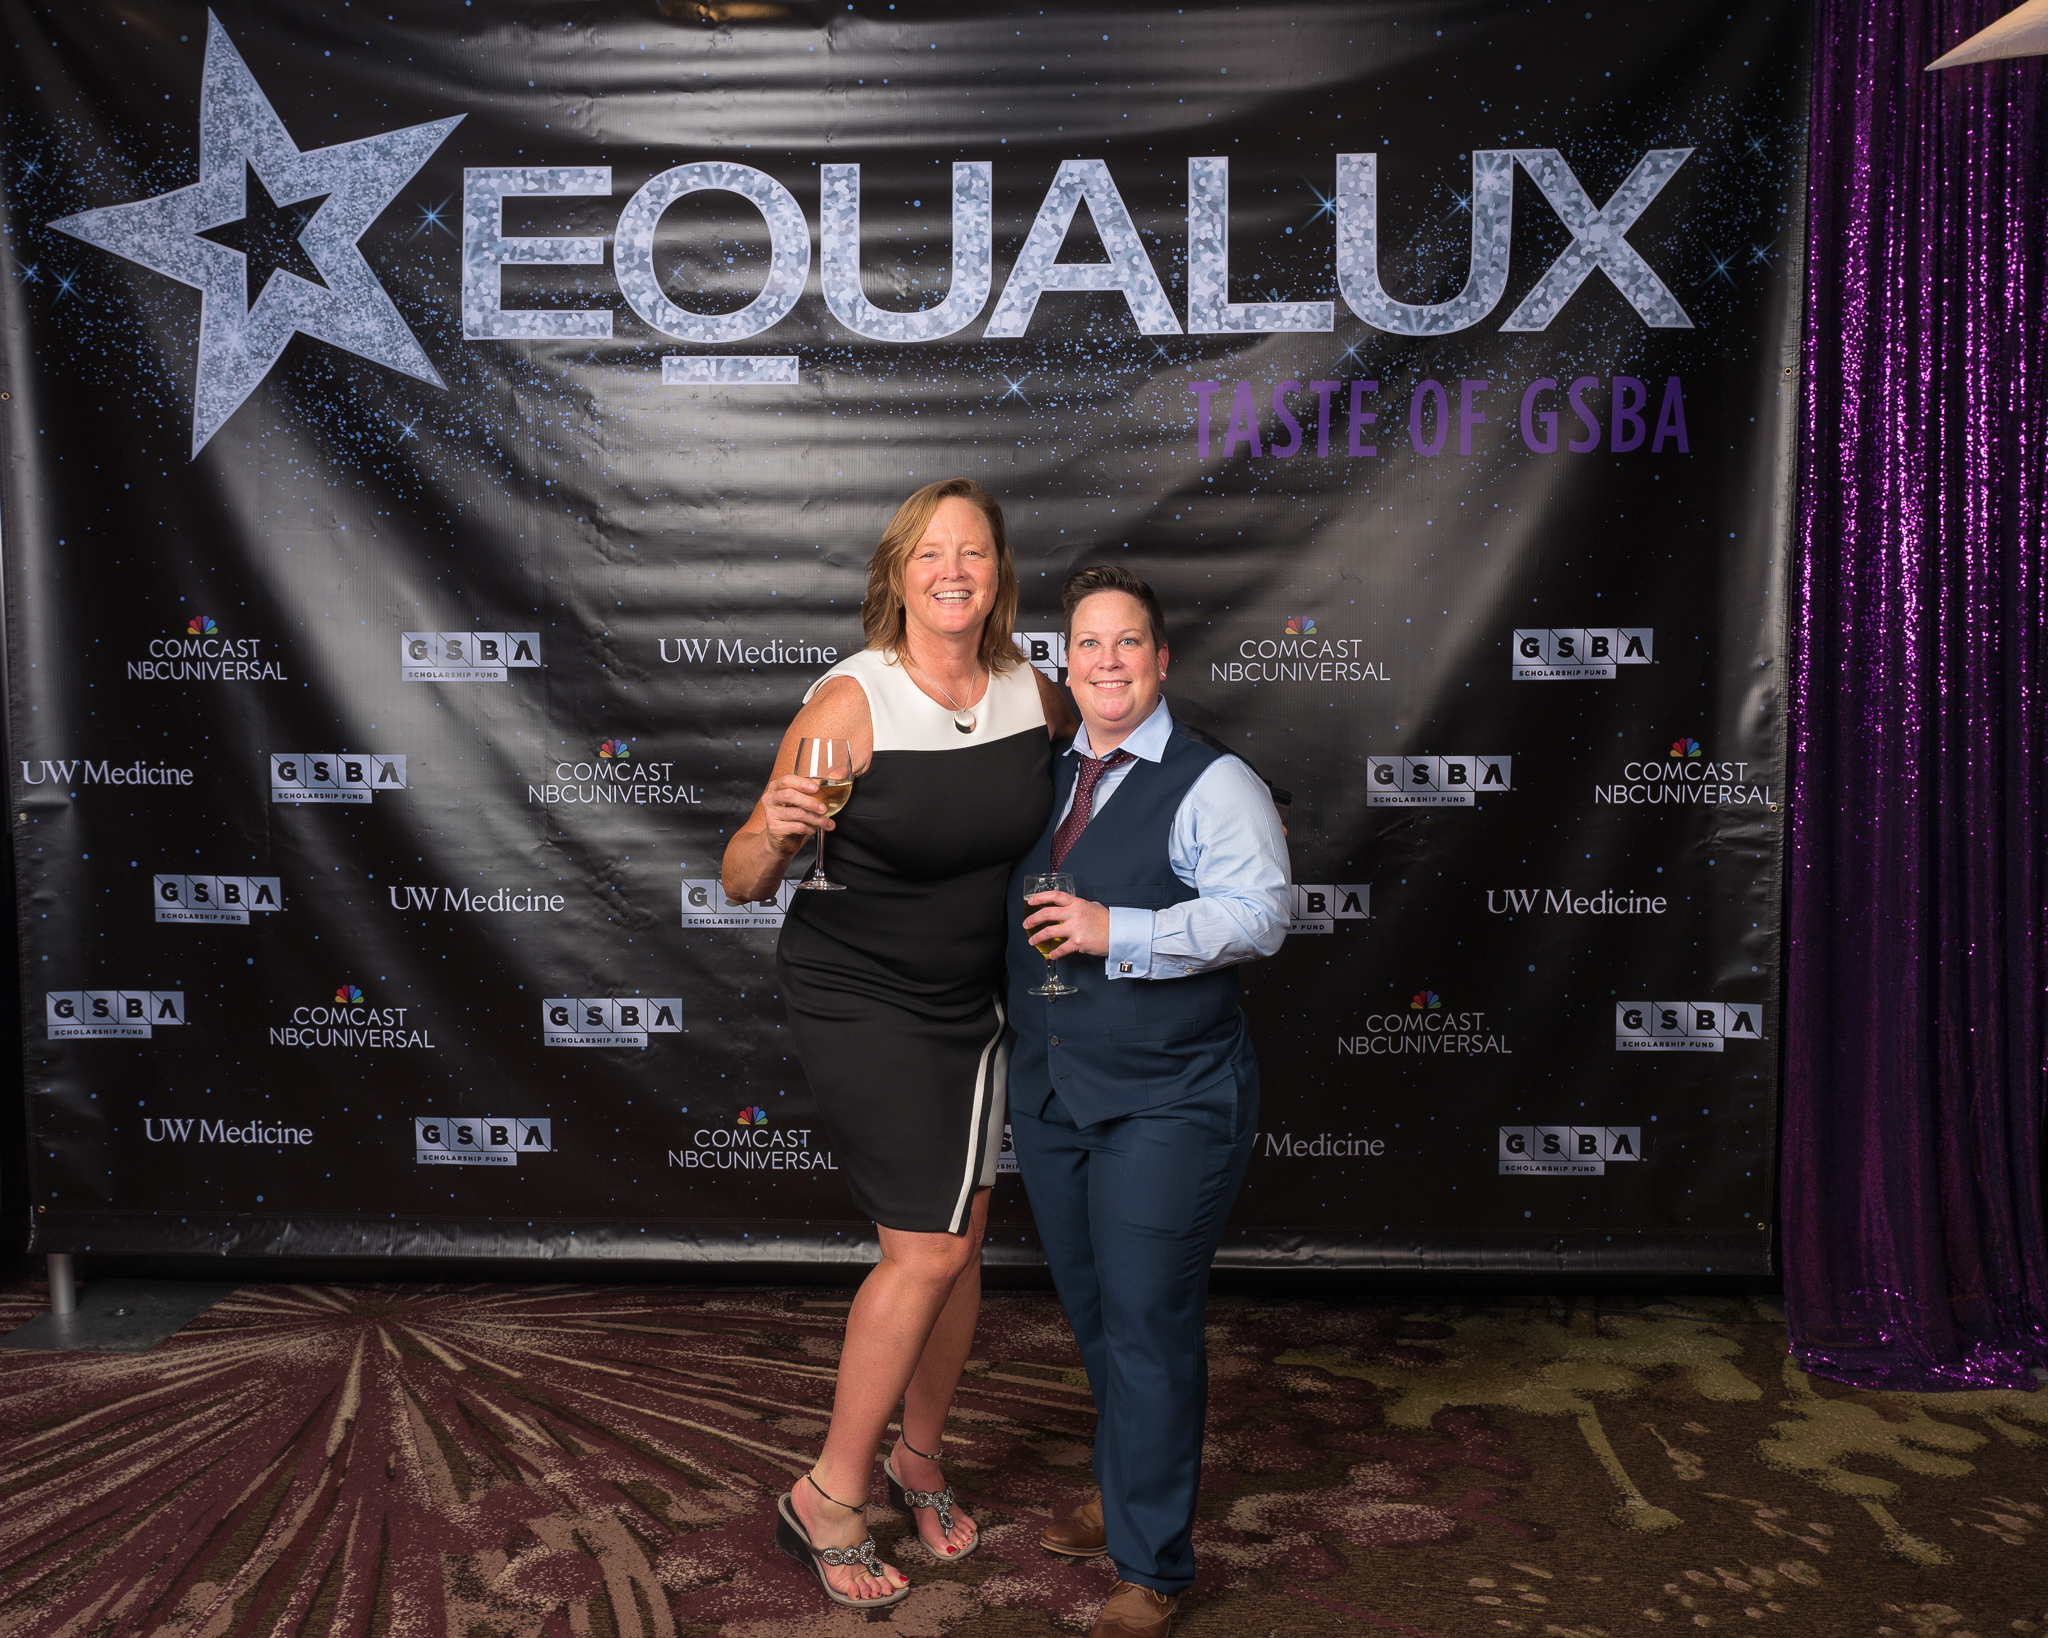 111718_GSBA EQUALUX at The Westin Seattle (Credit- Nate Gowdy)-133.jpg